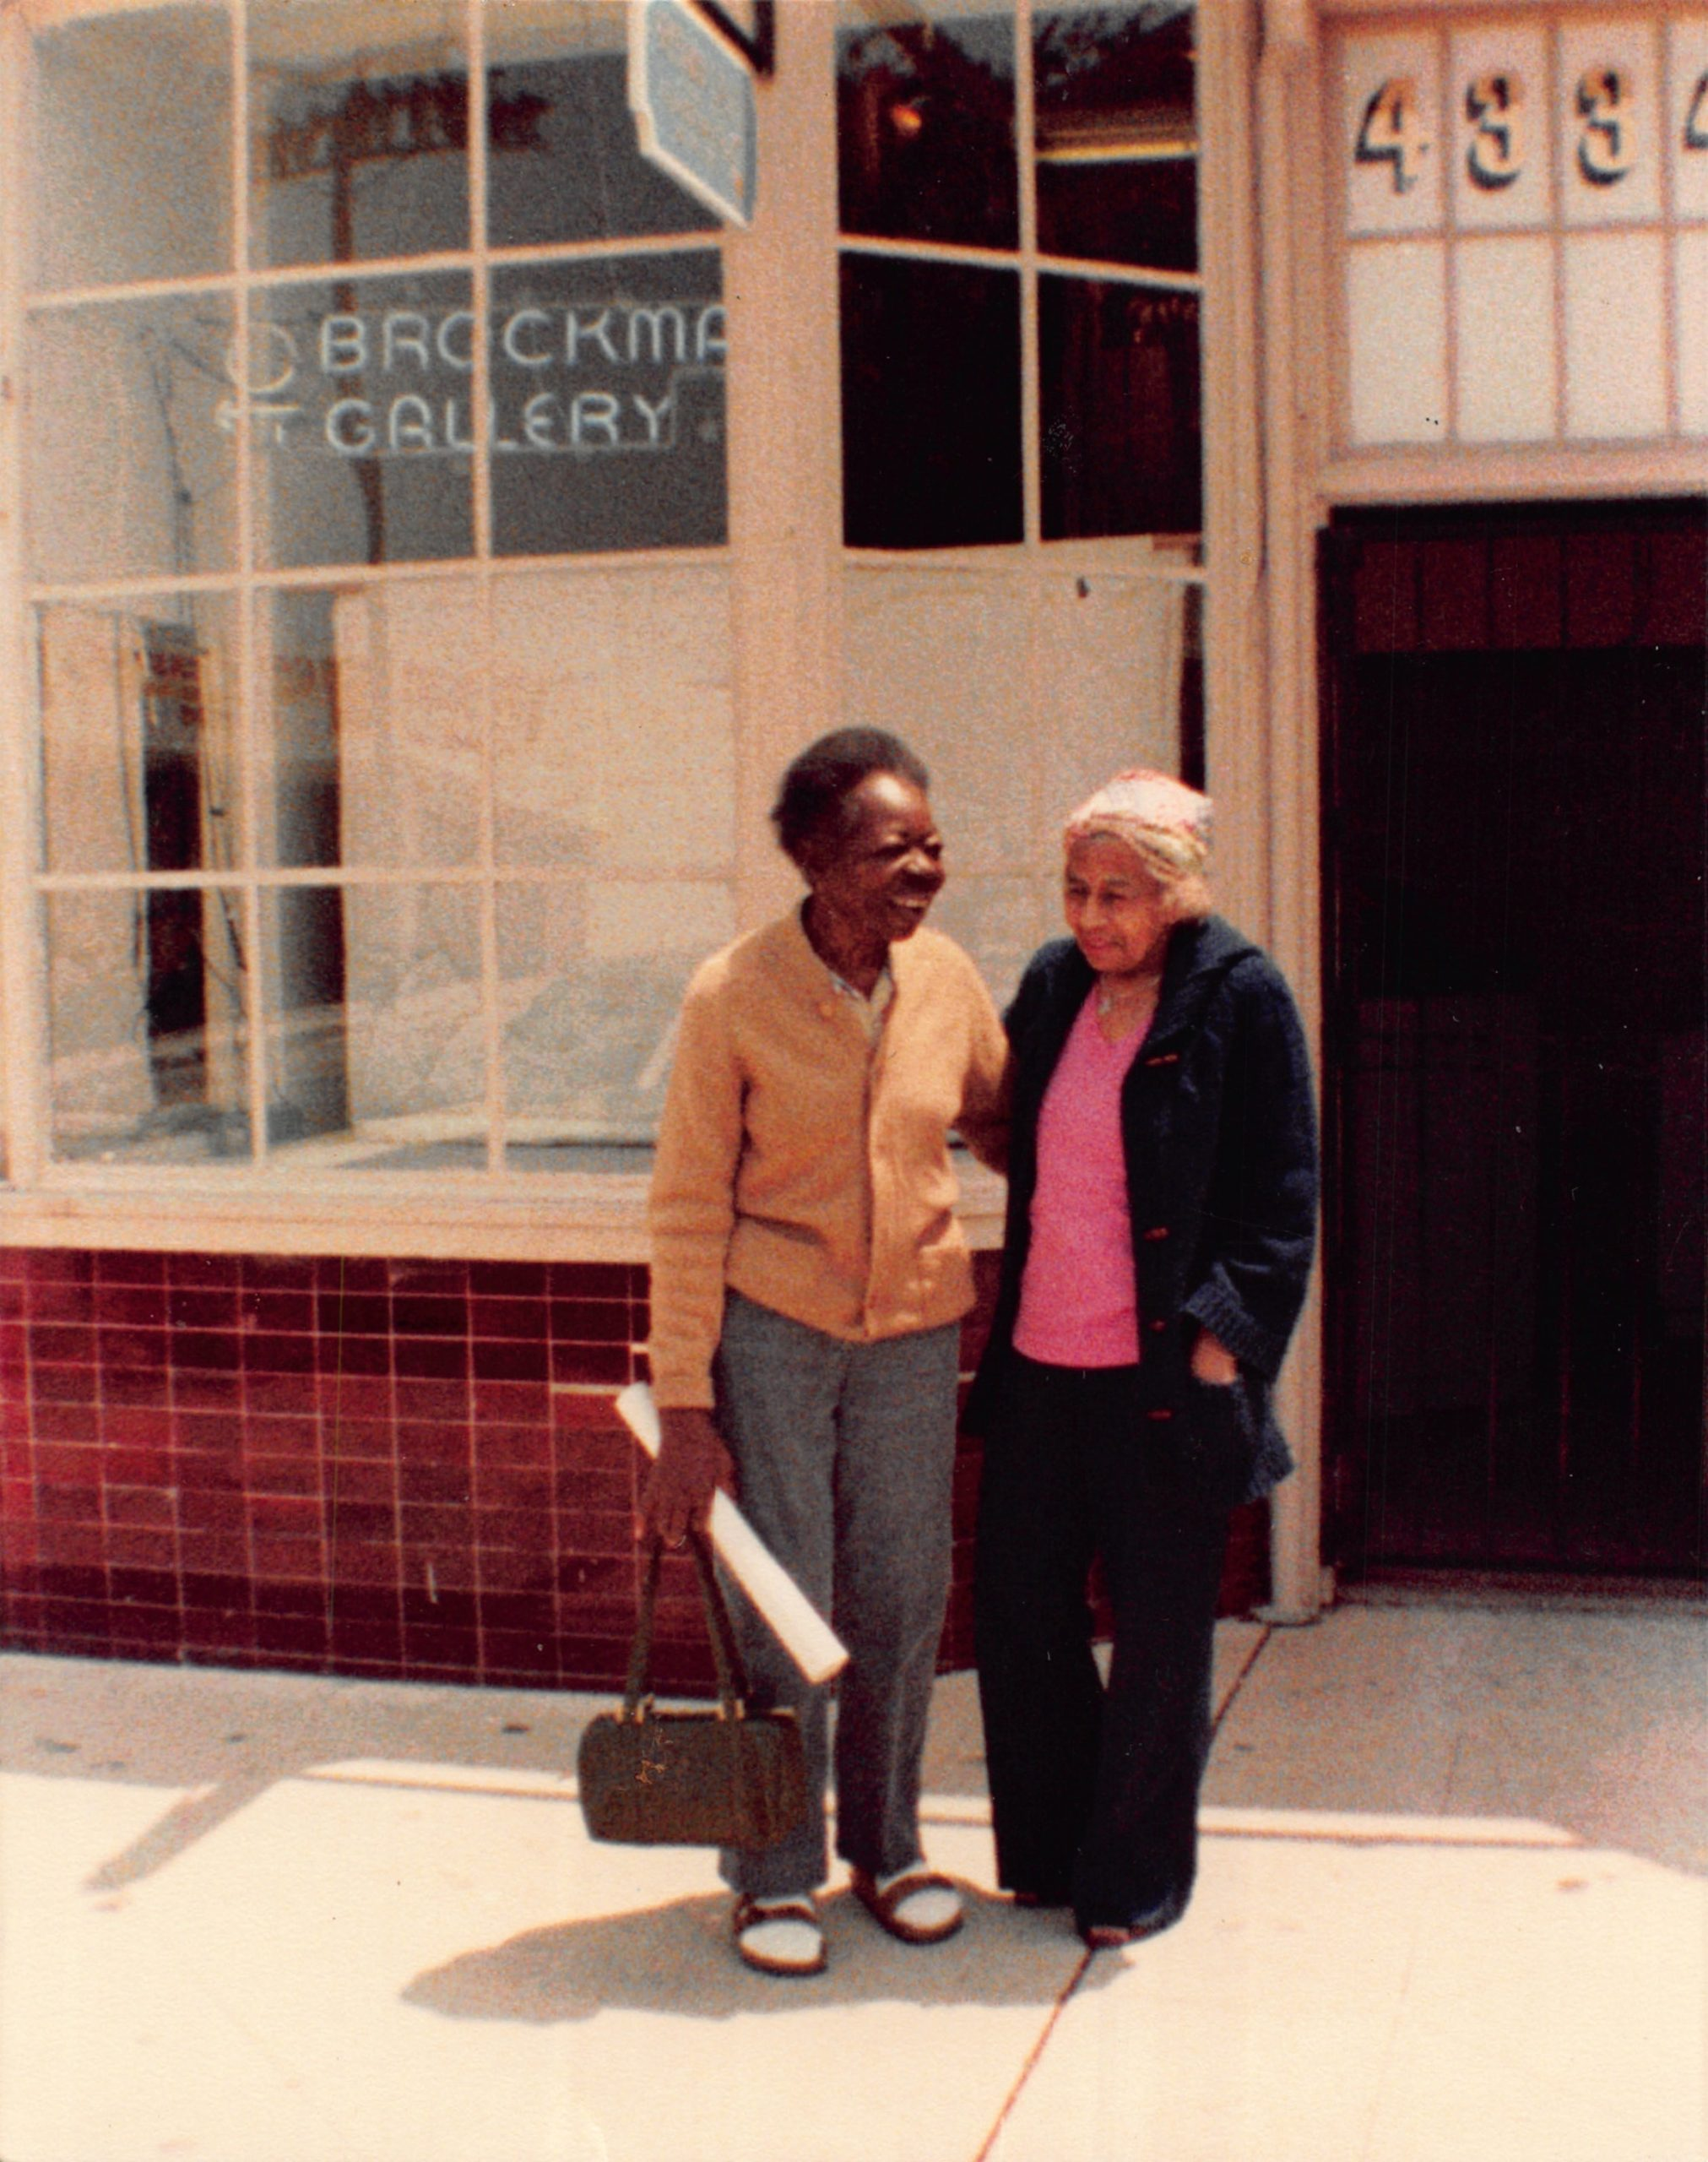 Ruth Waddy and Agnes Davis in front of Brockman Gallery. Photo: Courtesy of Los Angeles Public Library Special Collections.